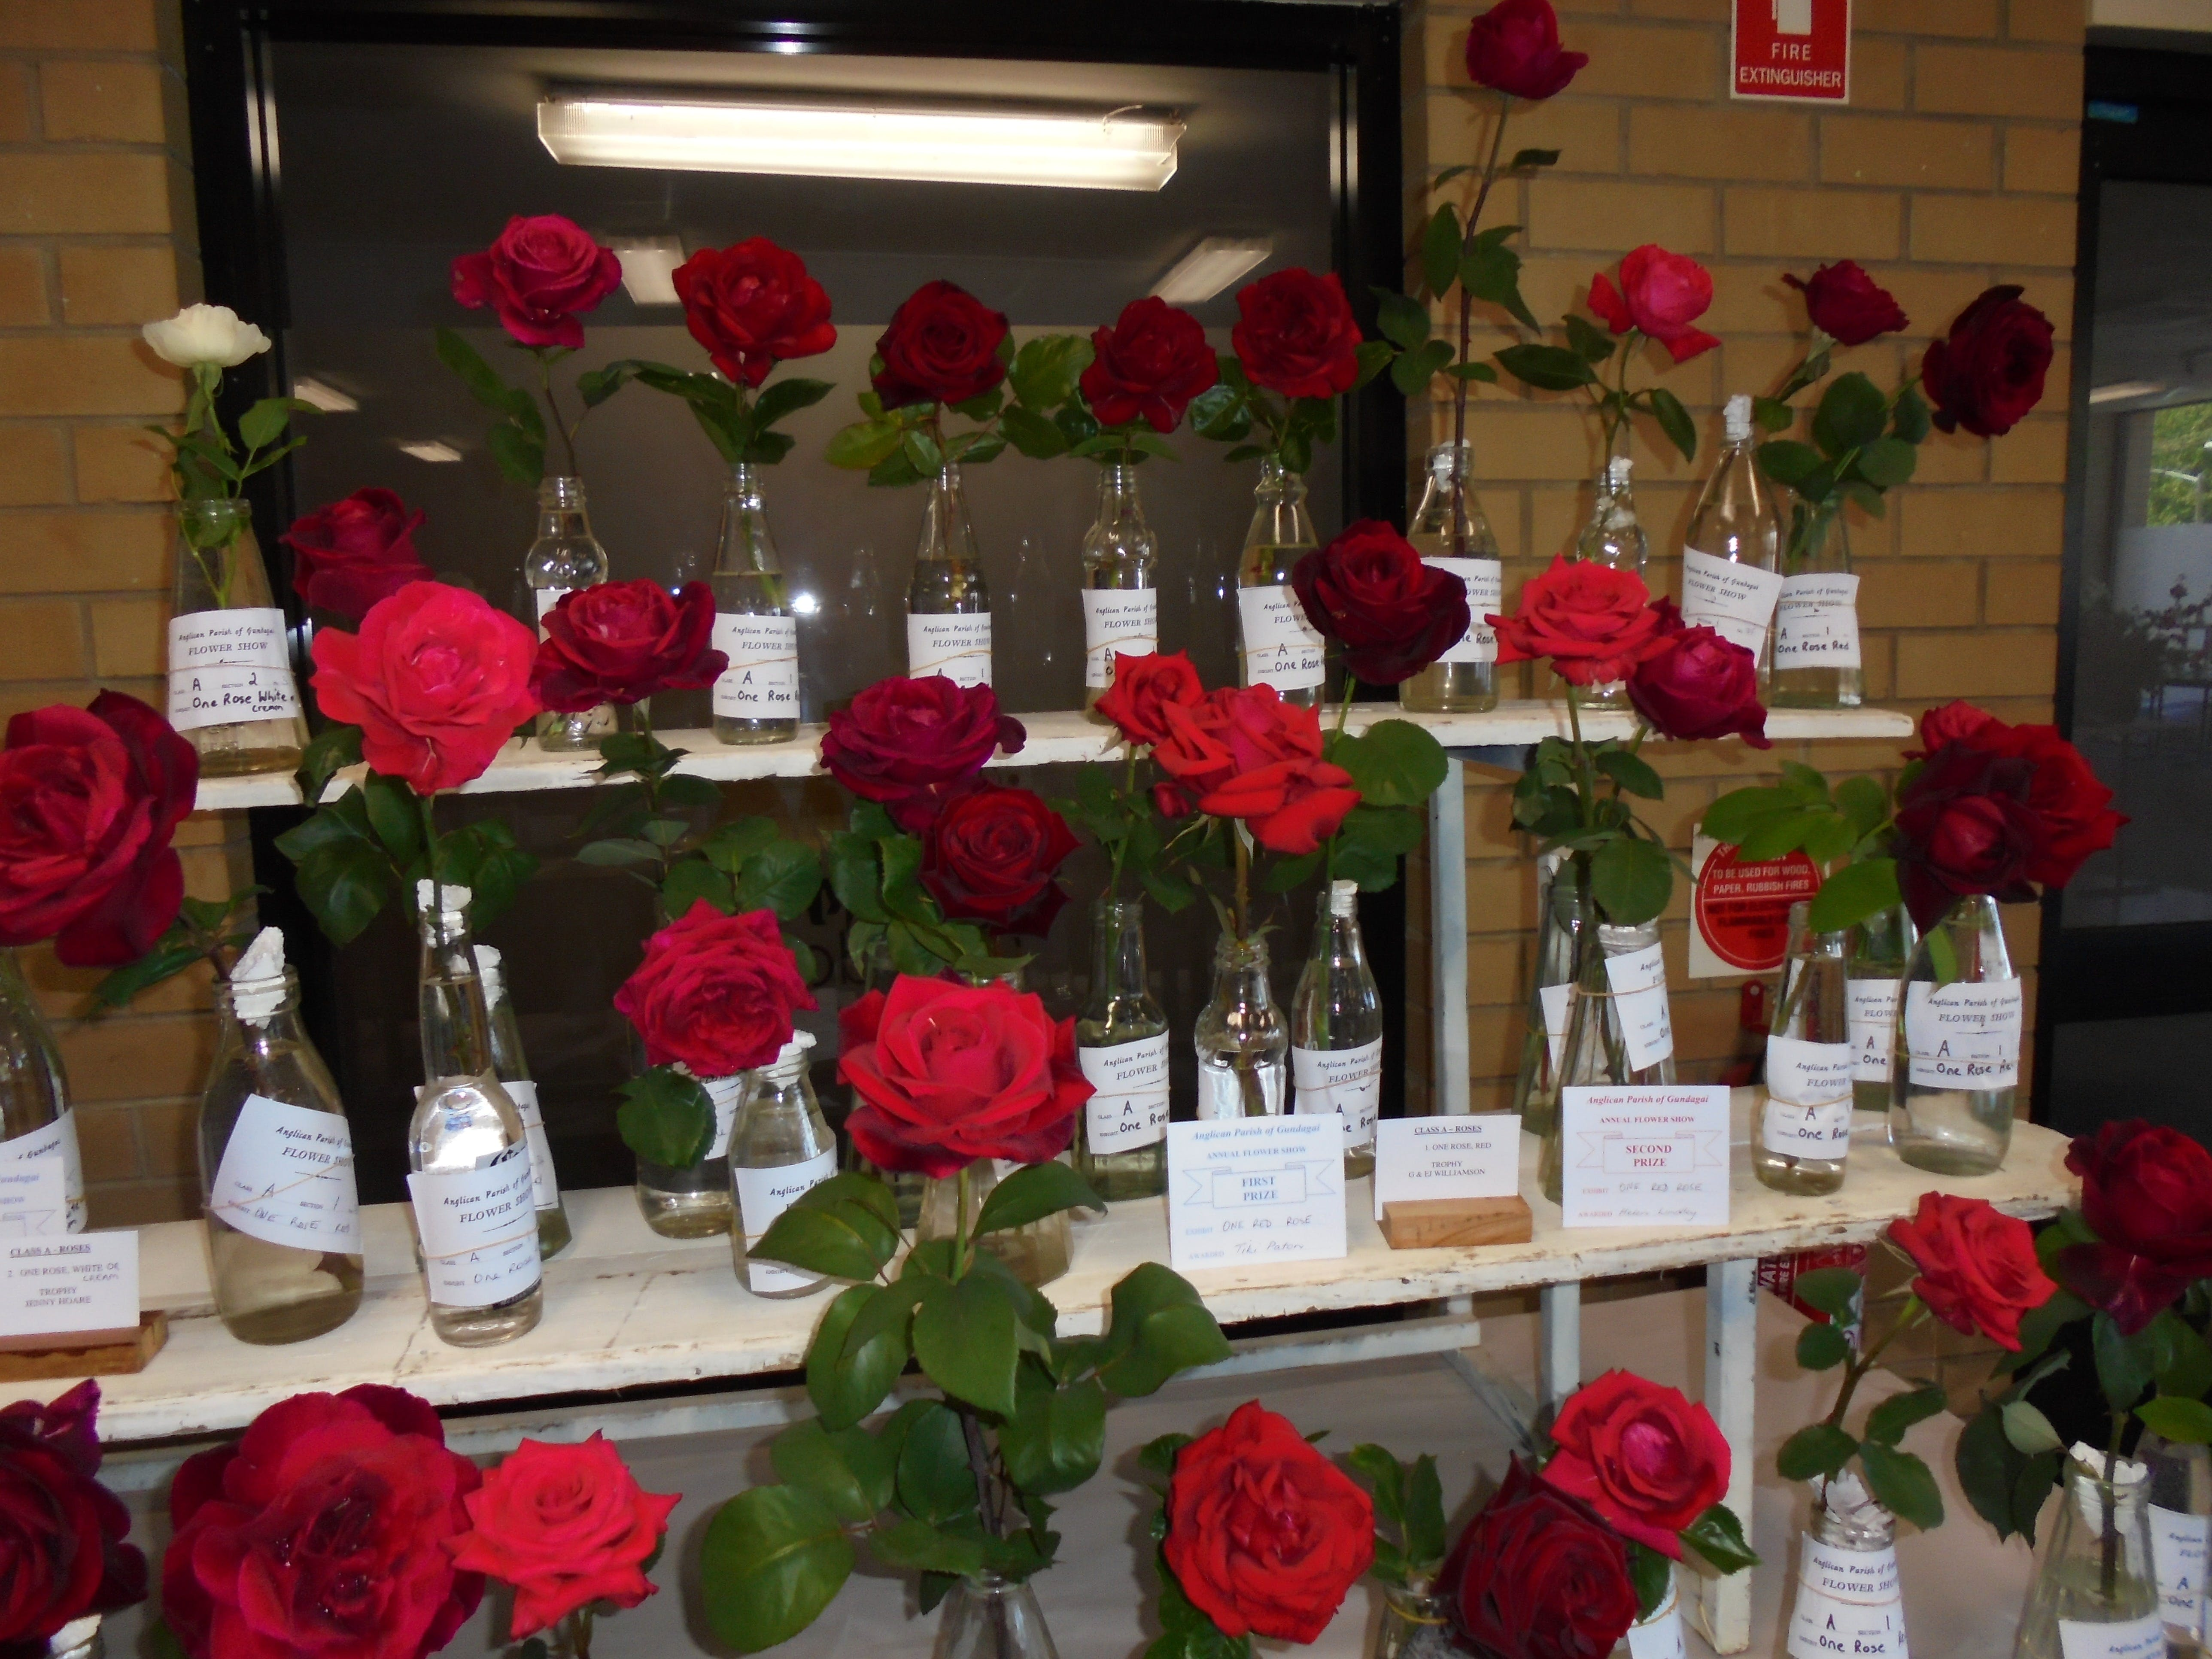 Anglican Spring Flower Show Gundagai - Pubs and Clubs